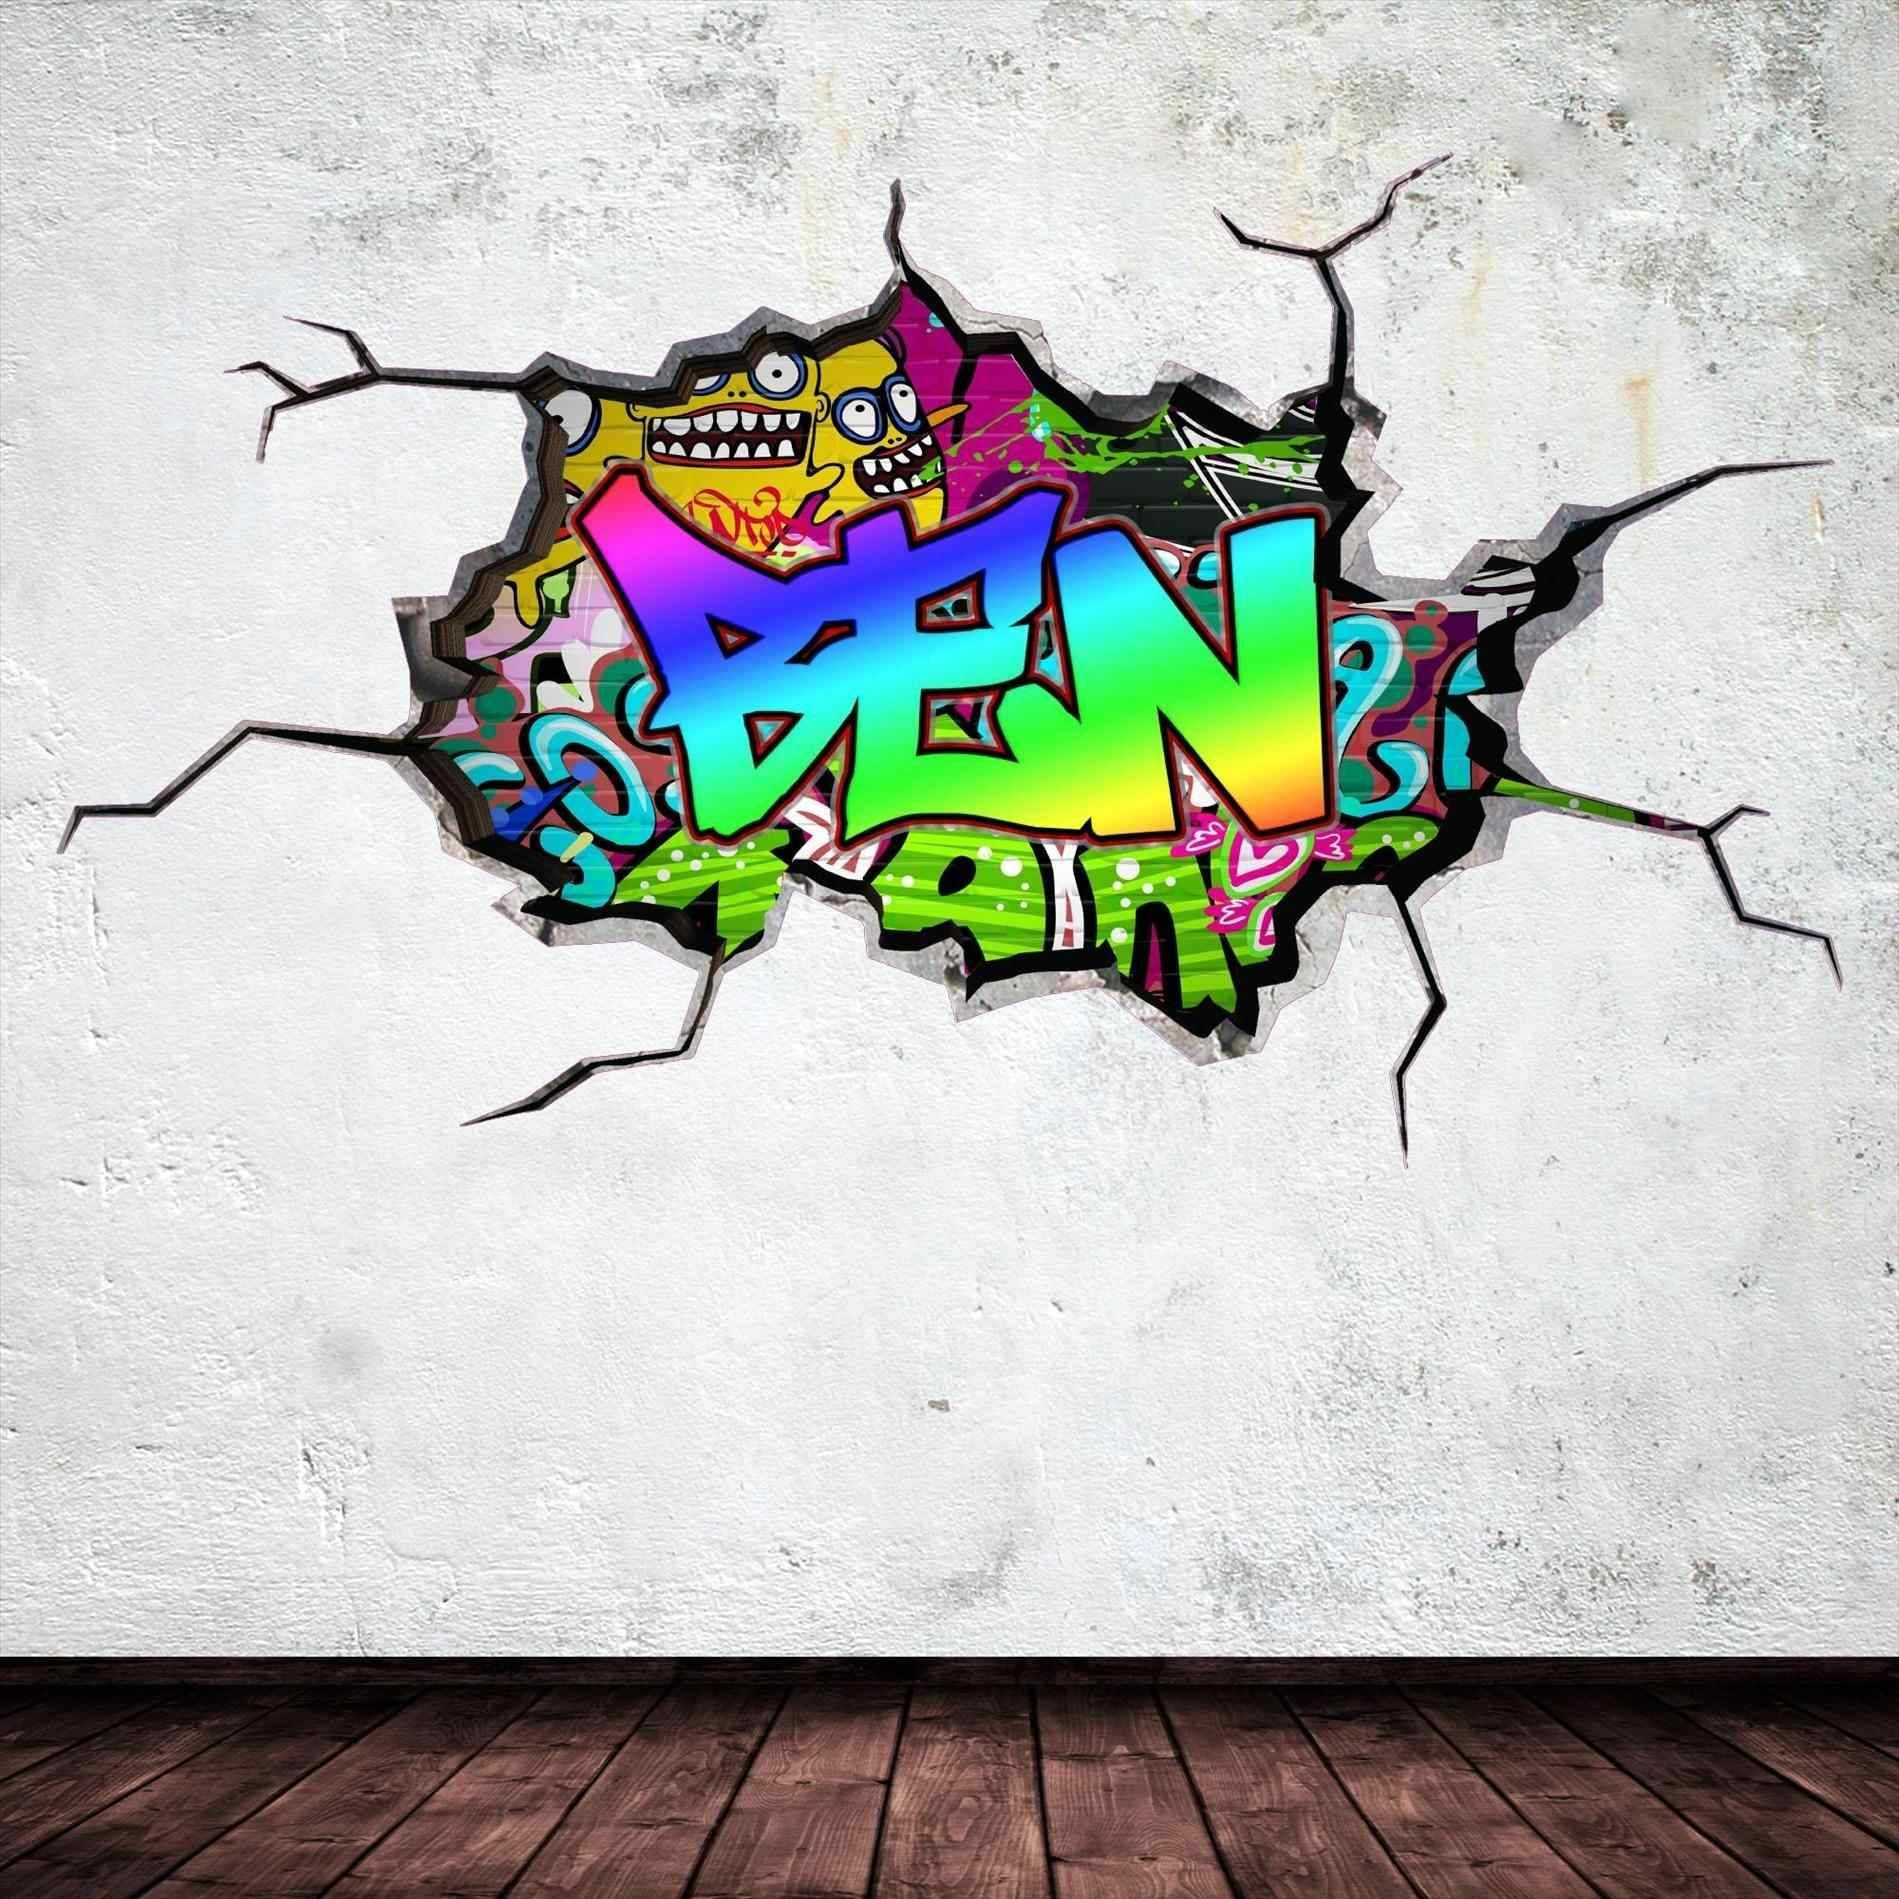 Personalized Graffiti Wall Decals | Home Interior Decor With Most Up To Date Personalized Graffiti Wall Art (View 17 of 30)